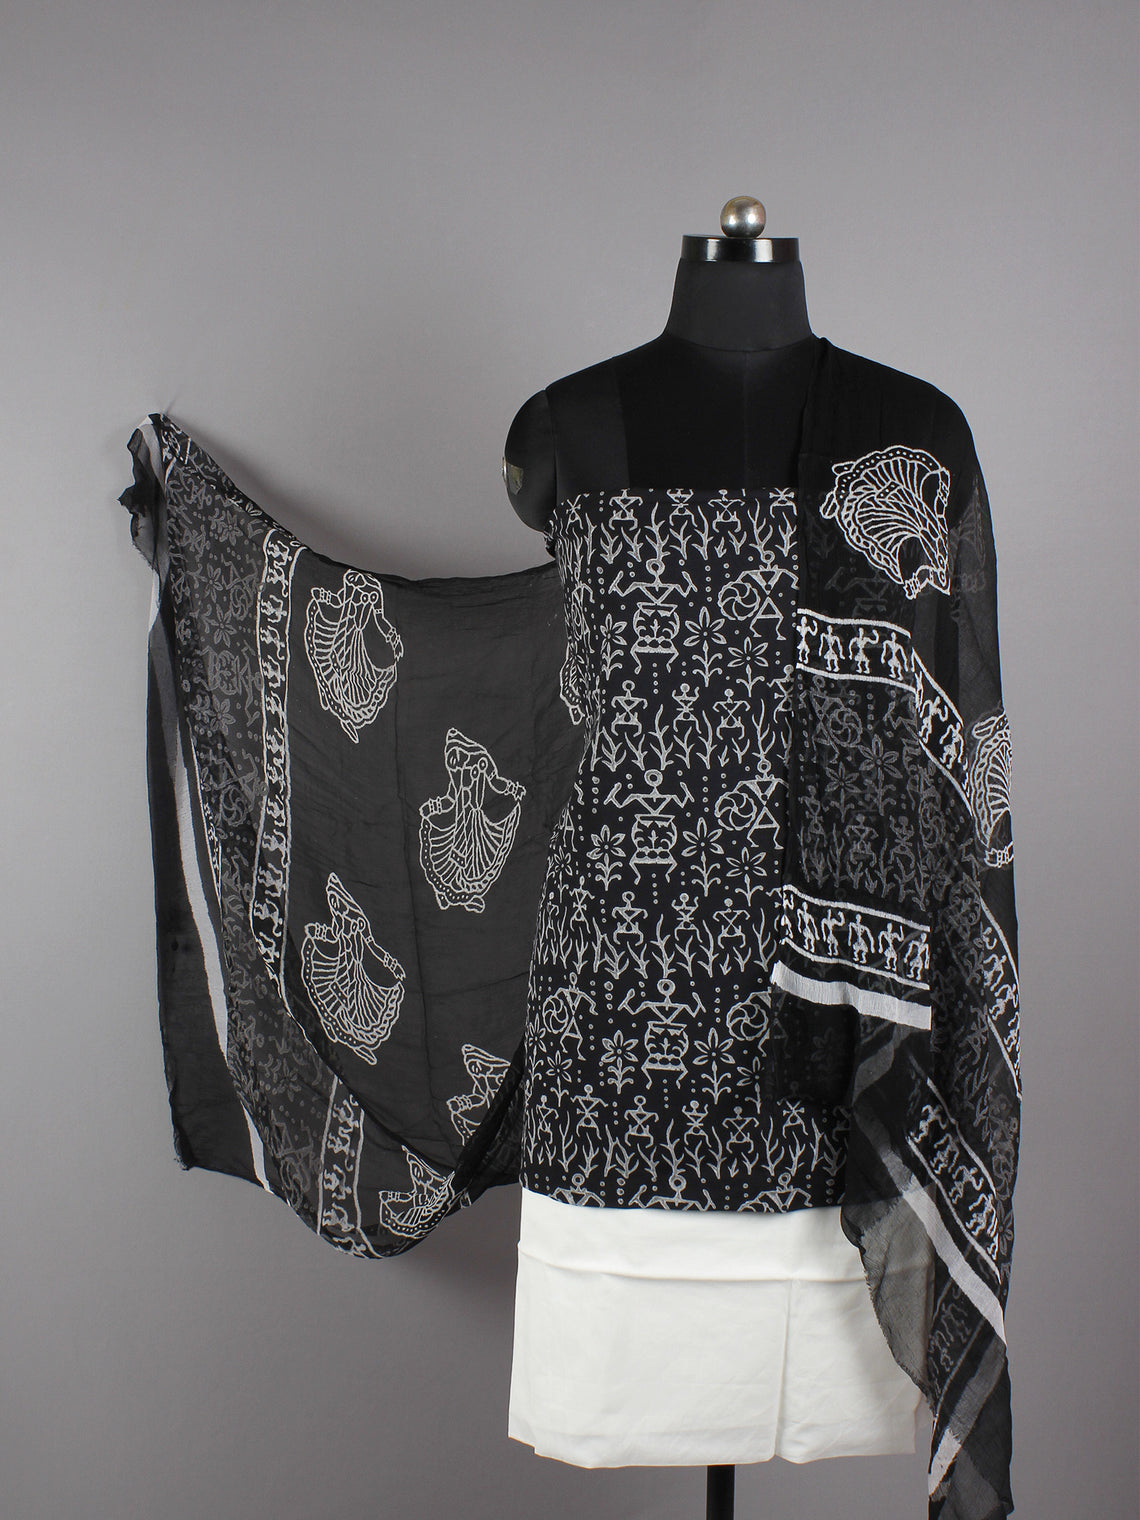 Black White Hand Block Printed Cotton Suit-Salwar Fabric With Chiffon Dupatta - S16281238